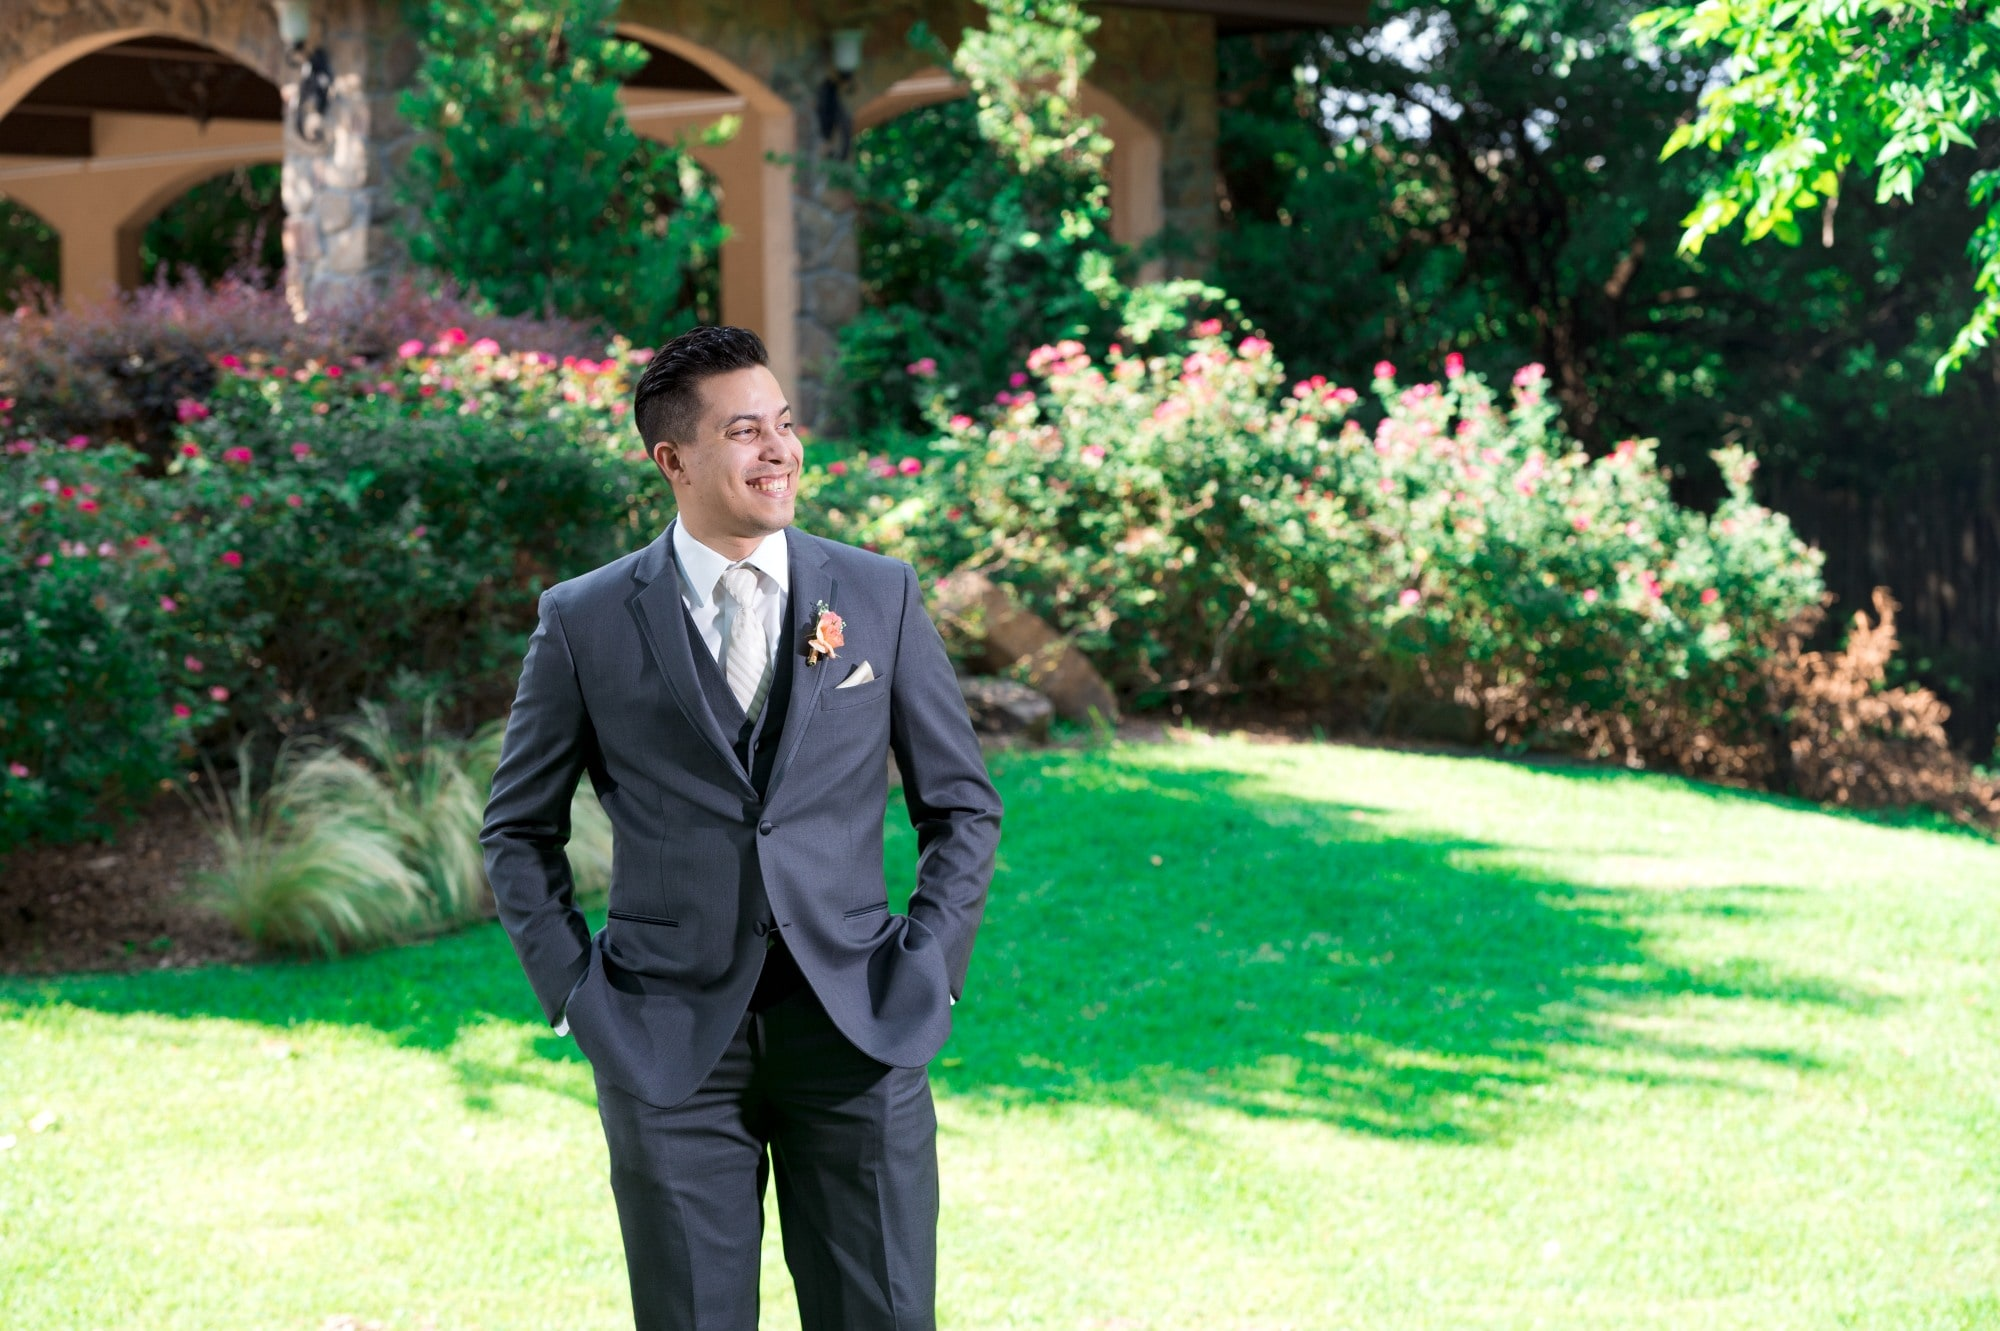 a man wearing a suit and tie standing in a garden